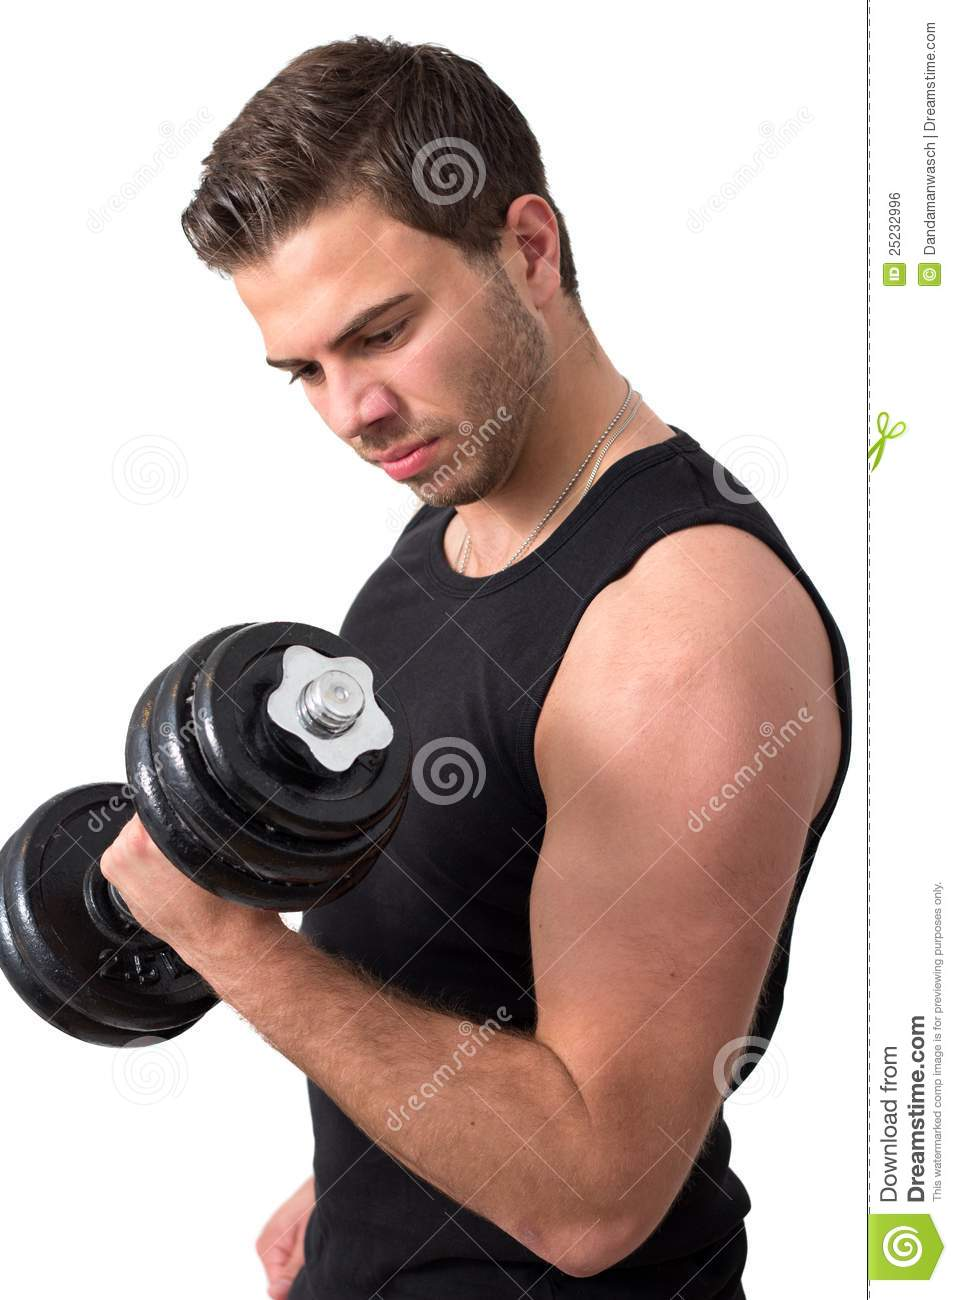 Attractive Young Man Working Out With Weights Royalty Free ...